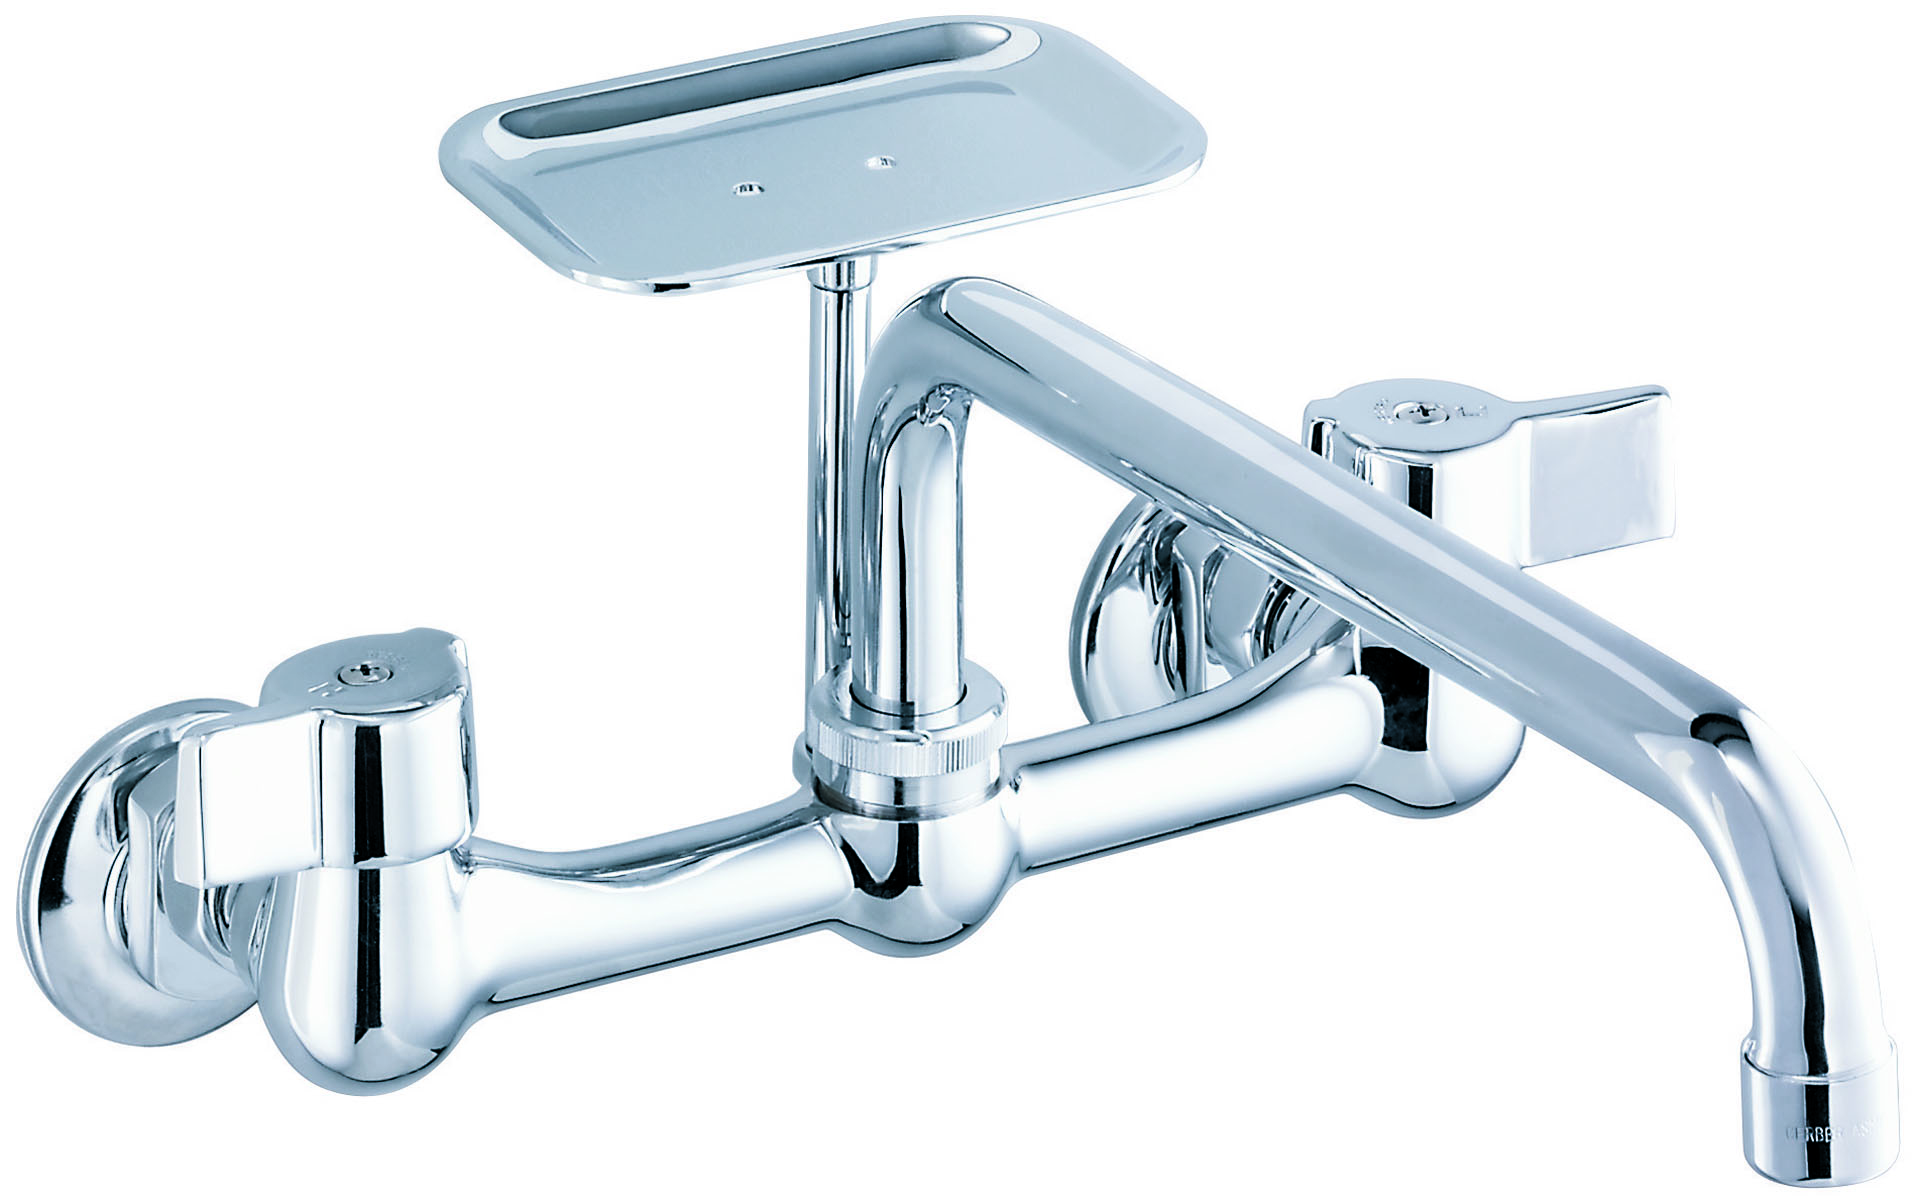 new diagram shower gerber of elegant faucets and at design style jose faucet peerless shop parts repair kitchen